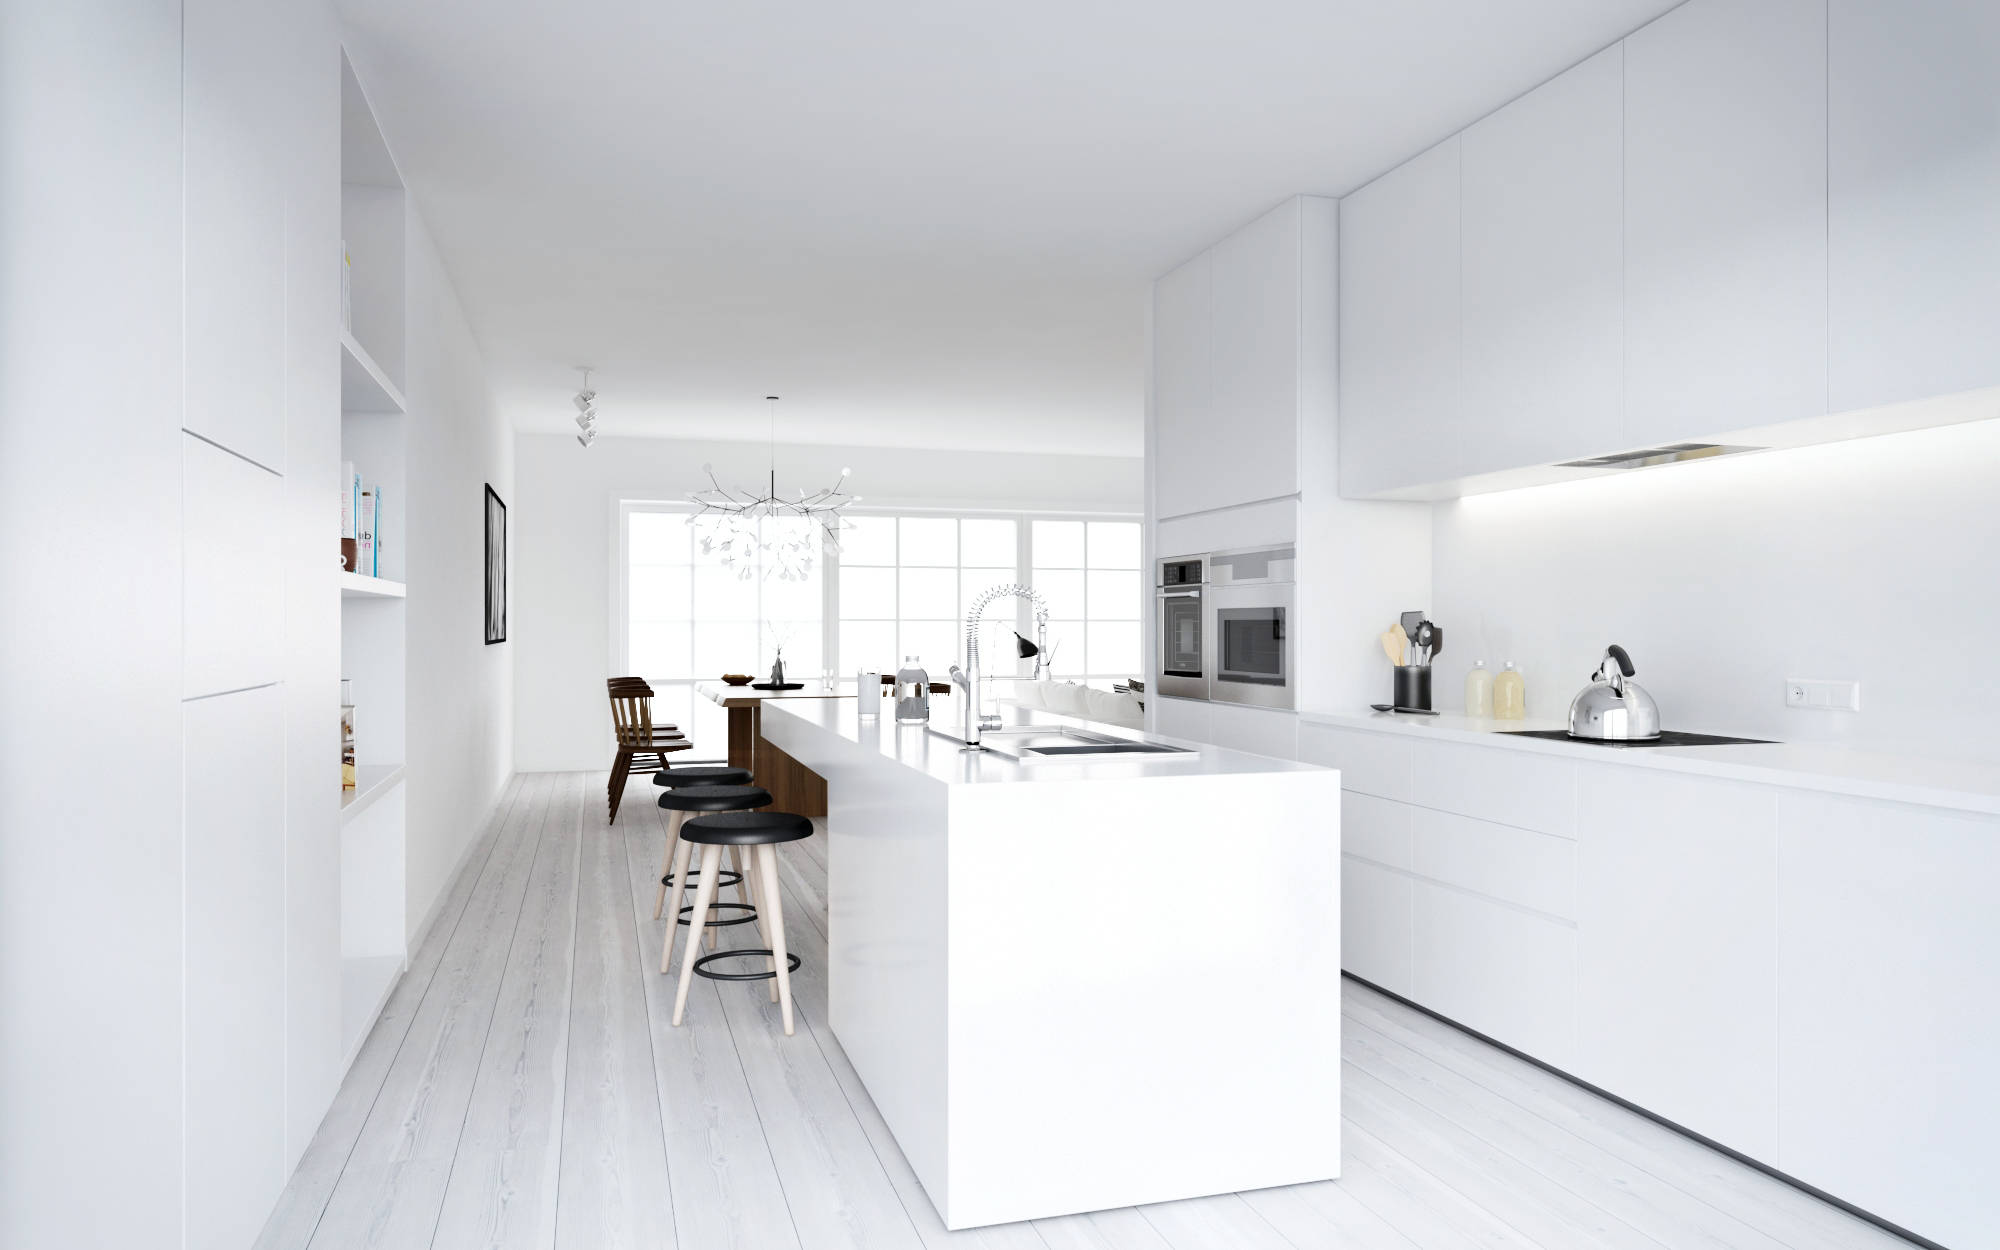 Atdesign nordic style minimalist kitchen in white interior design ideas - Minimal kitchen design ...